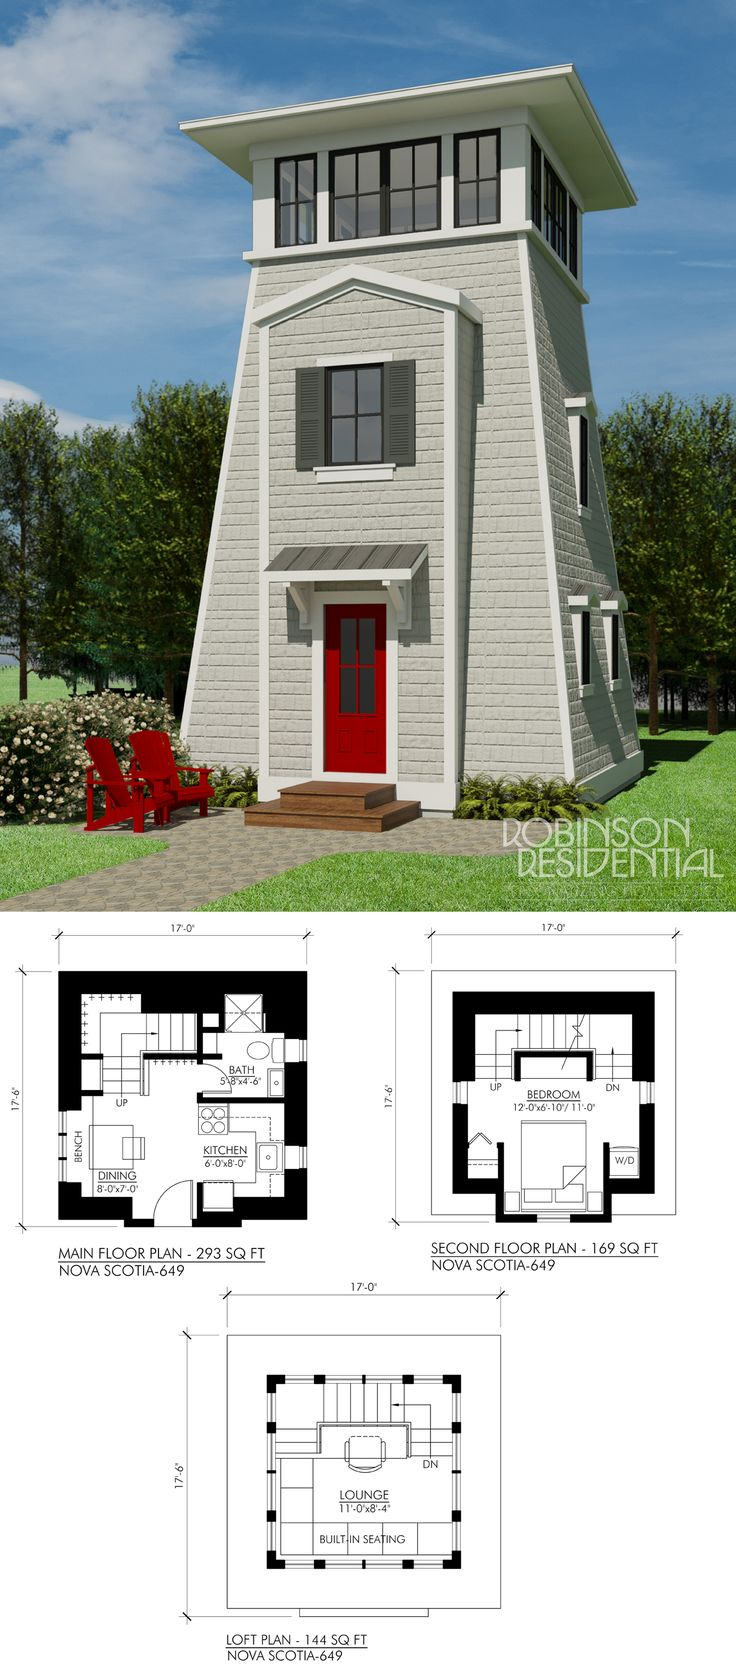 Best 25 small homes ideas on pinterest small home plans for Home plans washington state